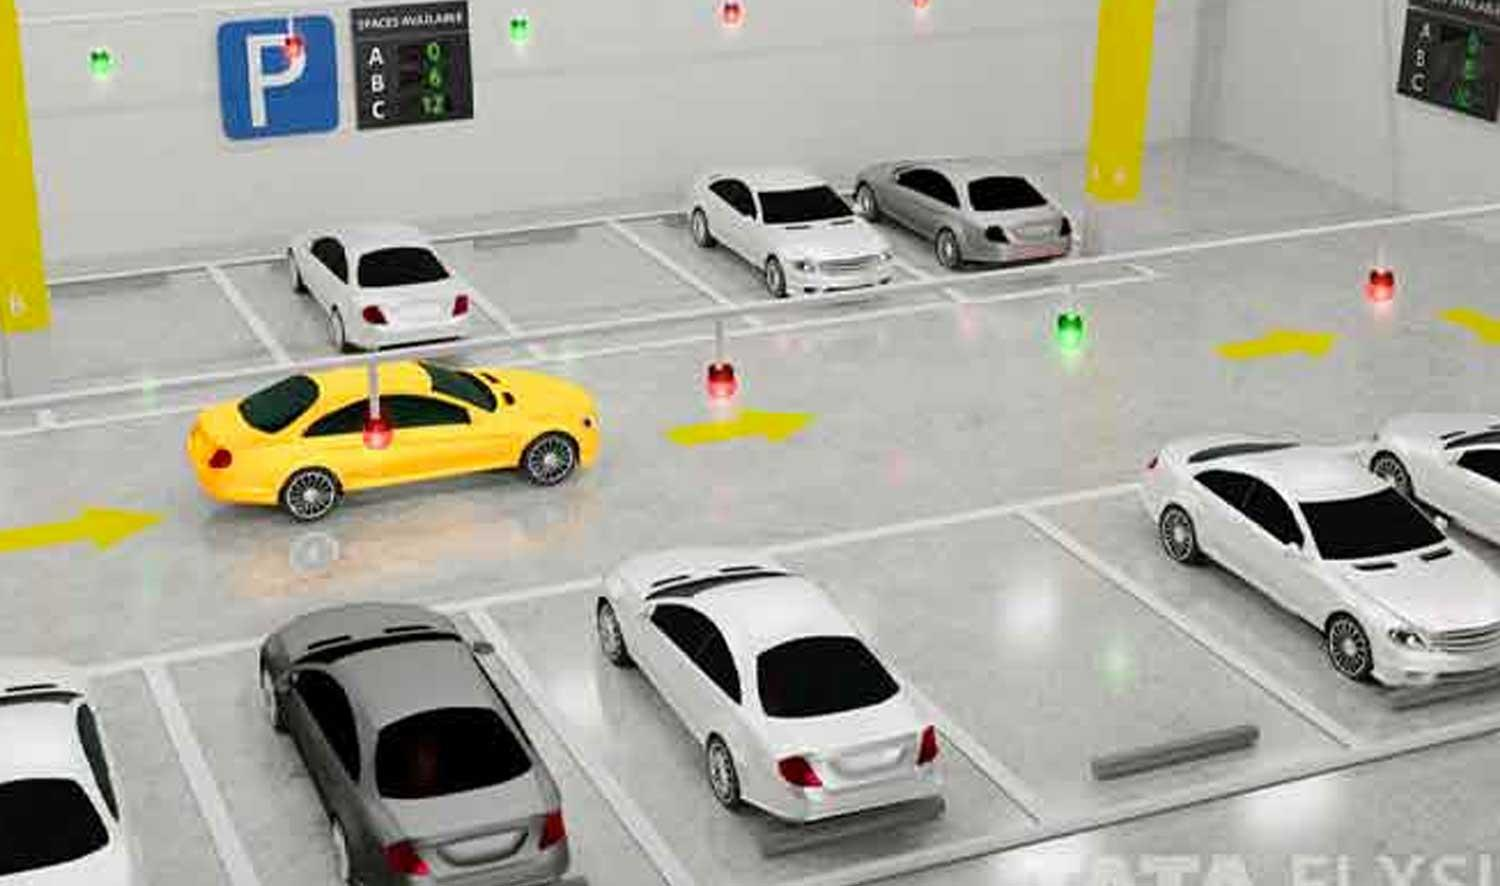 Tata Elxsi's new Smart Parking tech will allow you to teach your car to park itself